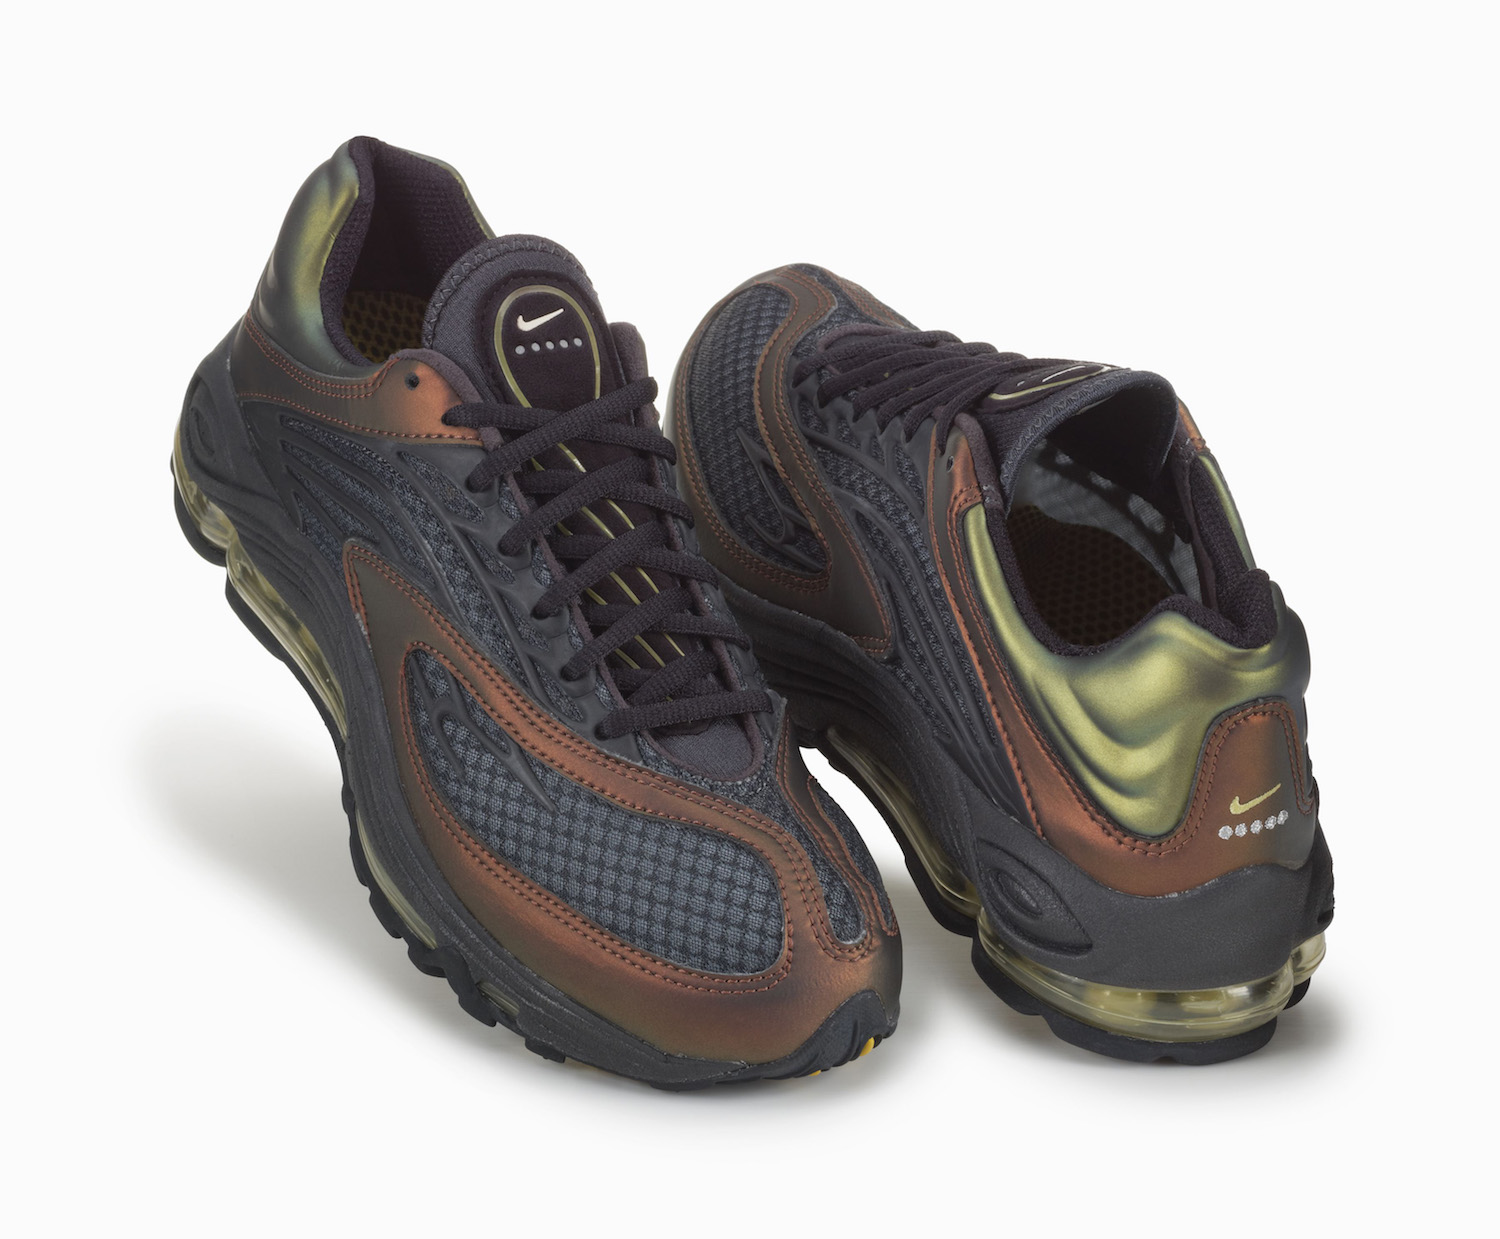 1999 Nike air Tuned max 2 - WearTesters